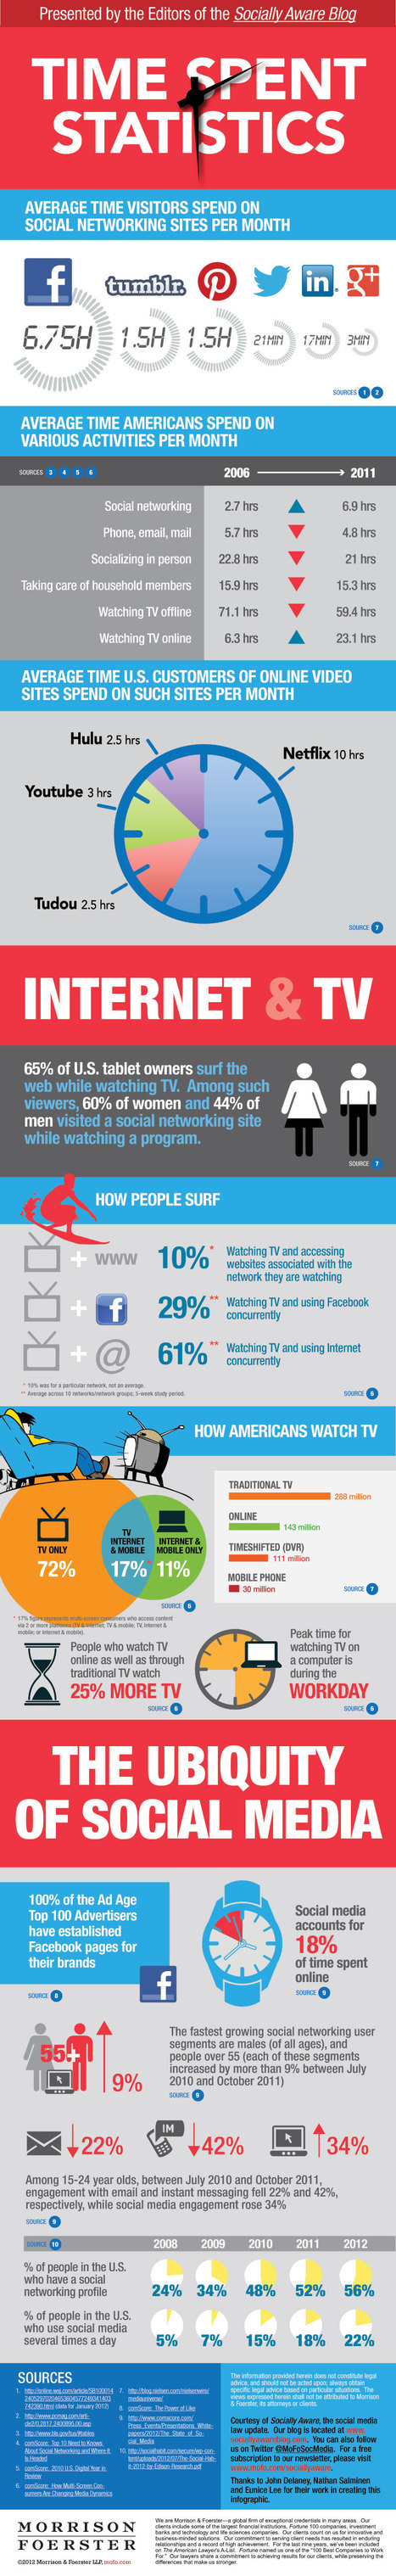 The Growing Impact of Social Media #infographic /@BerriePelser | DGTS Digital | Scoop.it